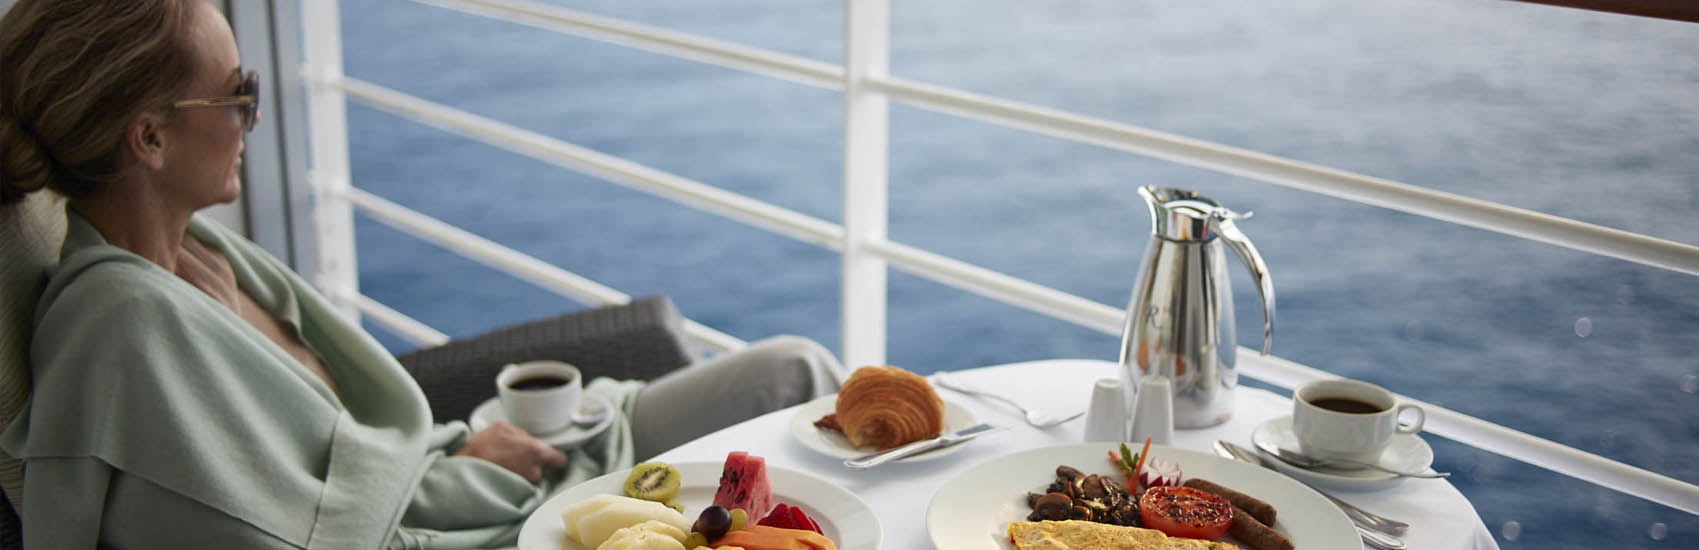 Canadian Residents Save 10% with Oceania Cruises 1